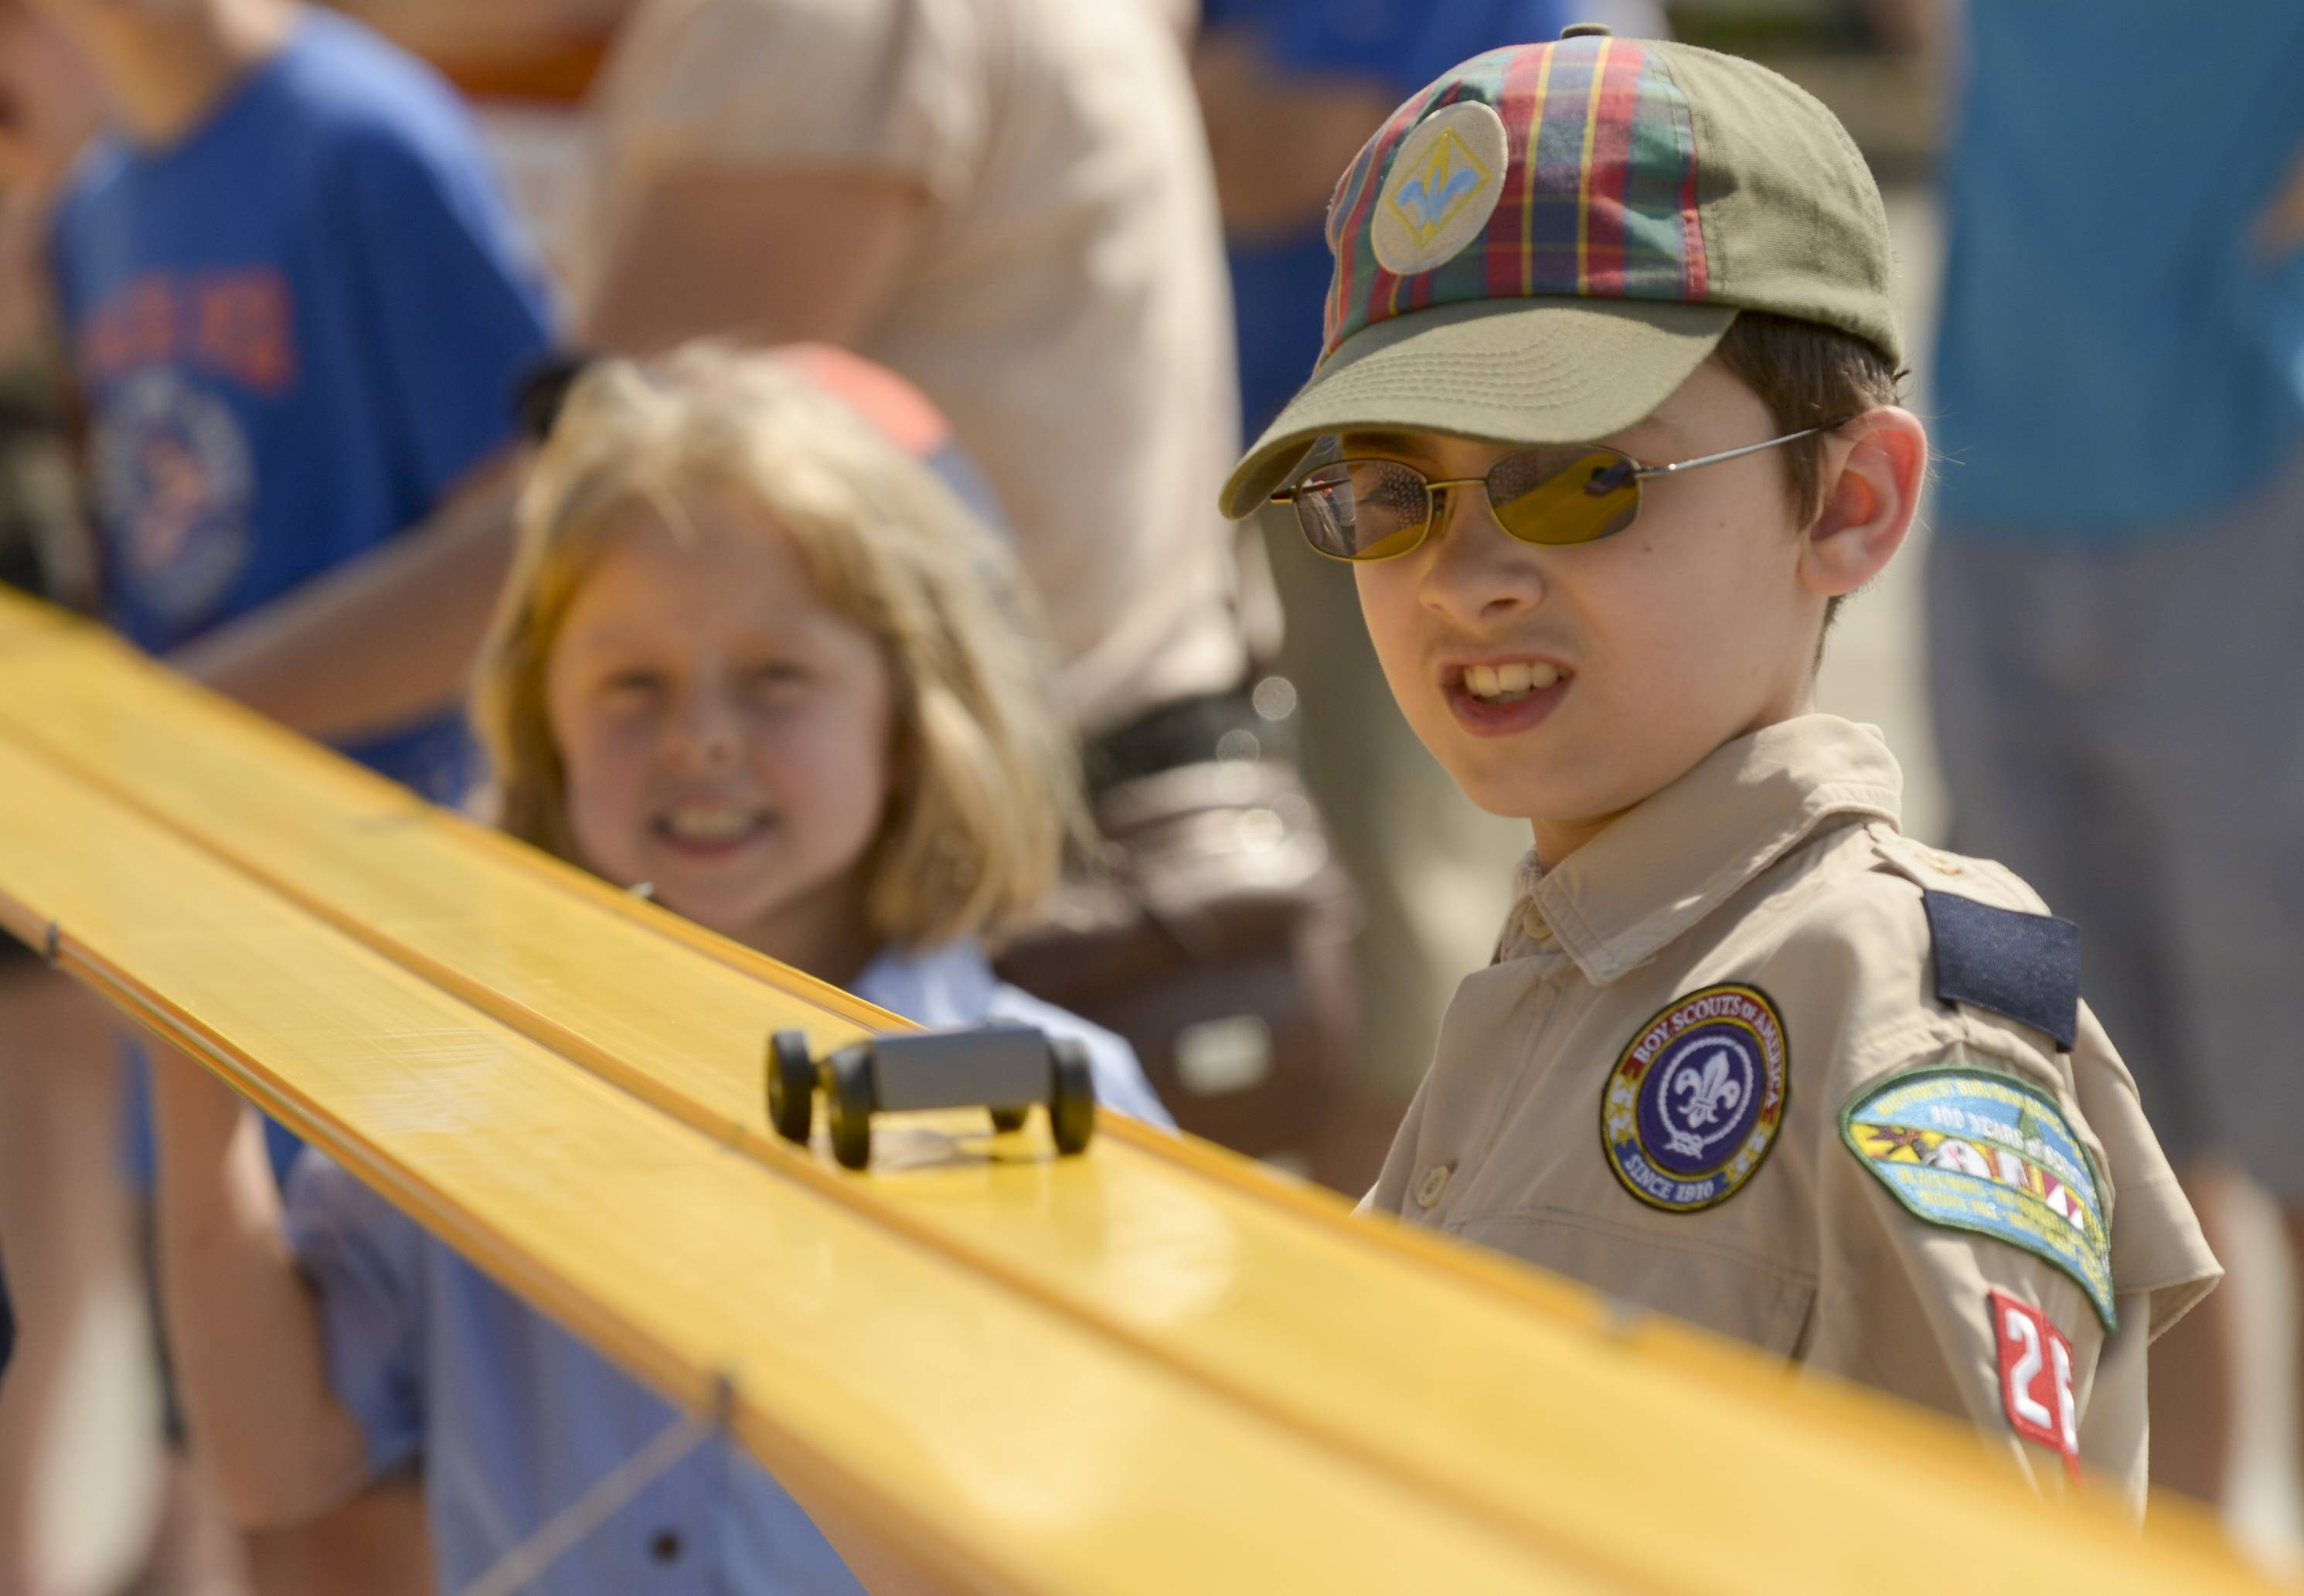 Four Boy Scout councils consolidating to increase membership, donations